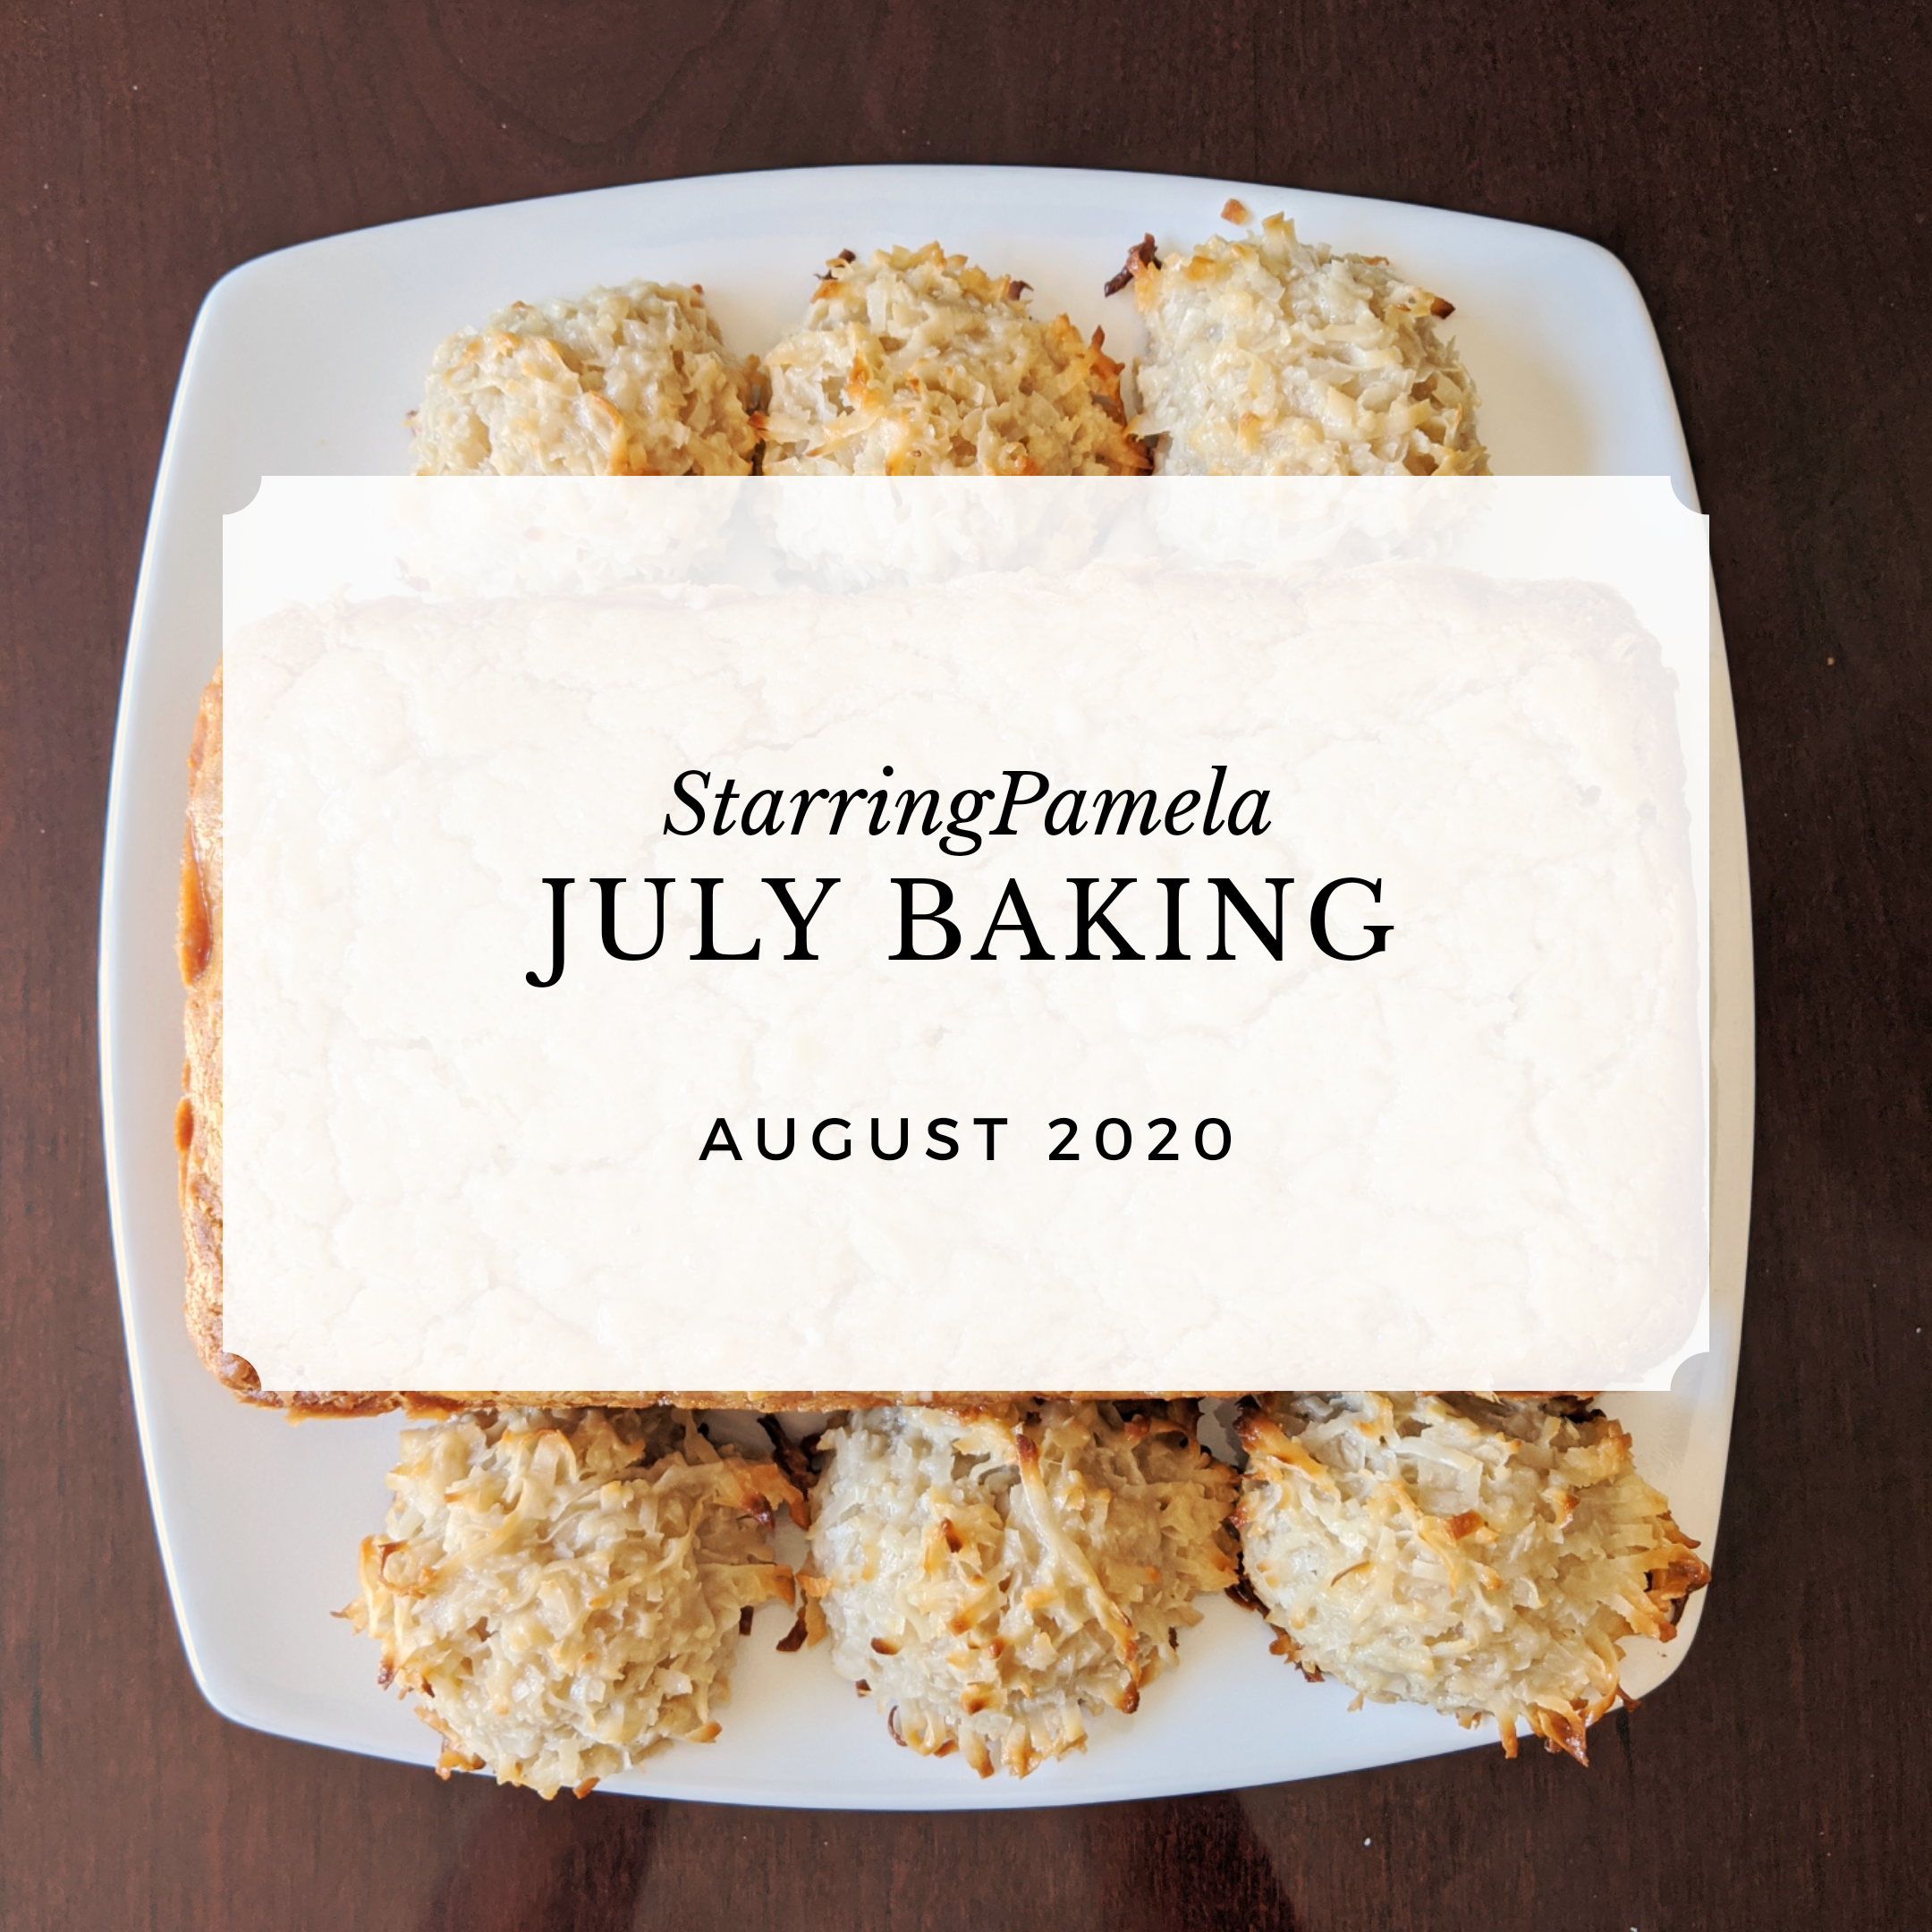 july baking featured image